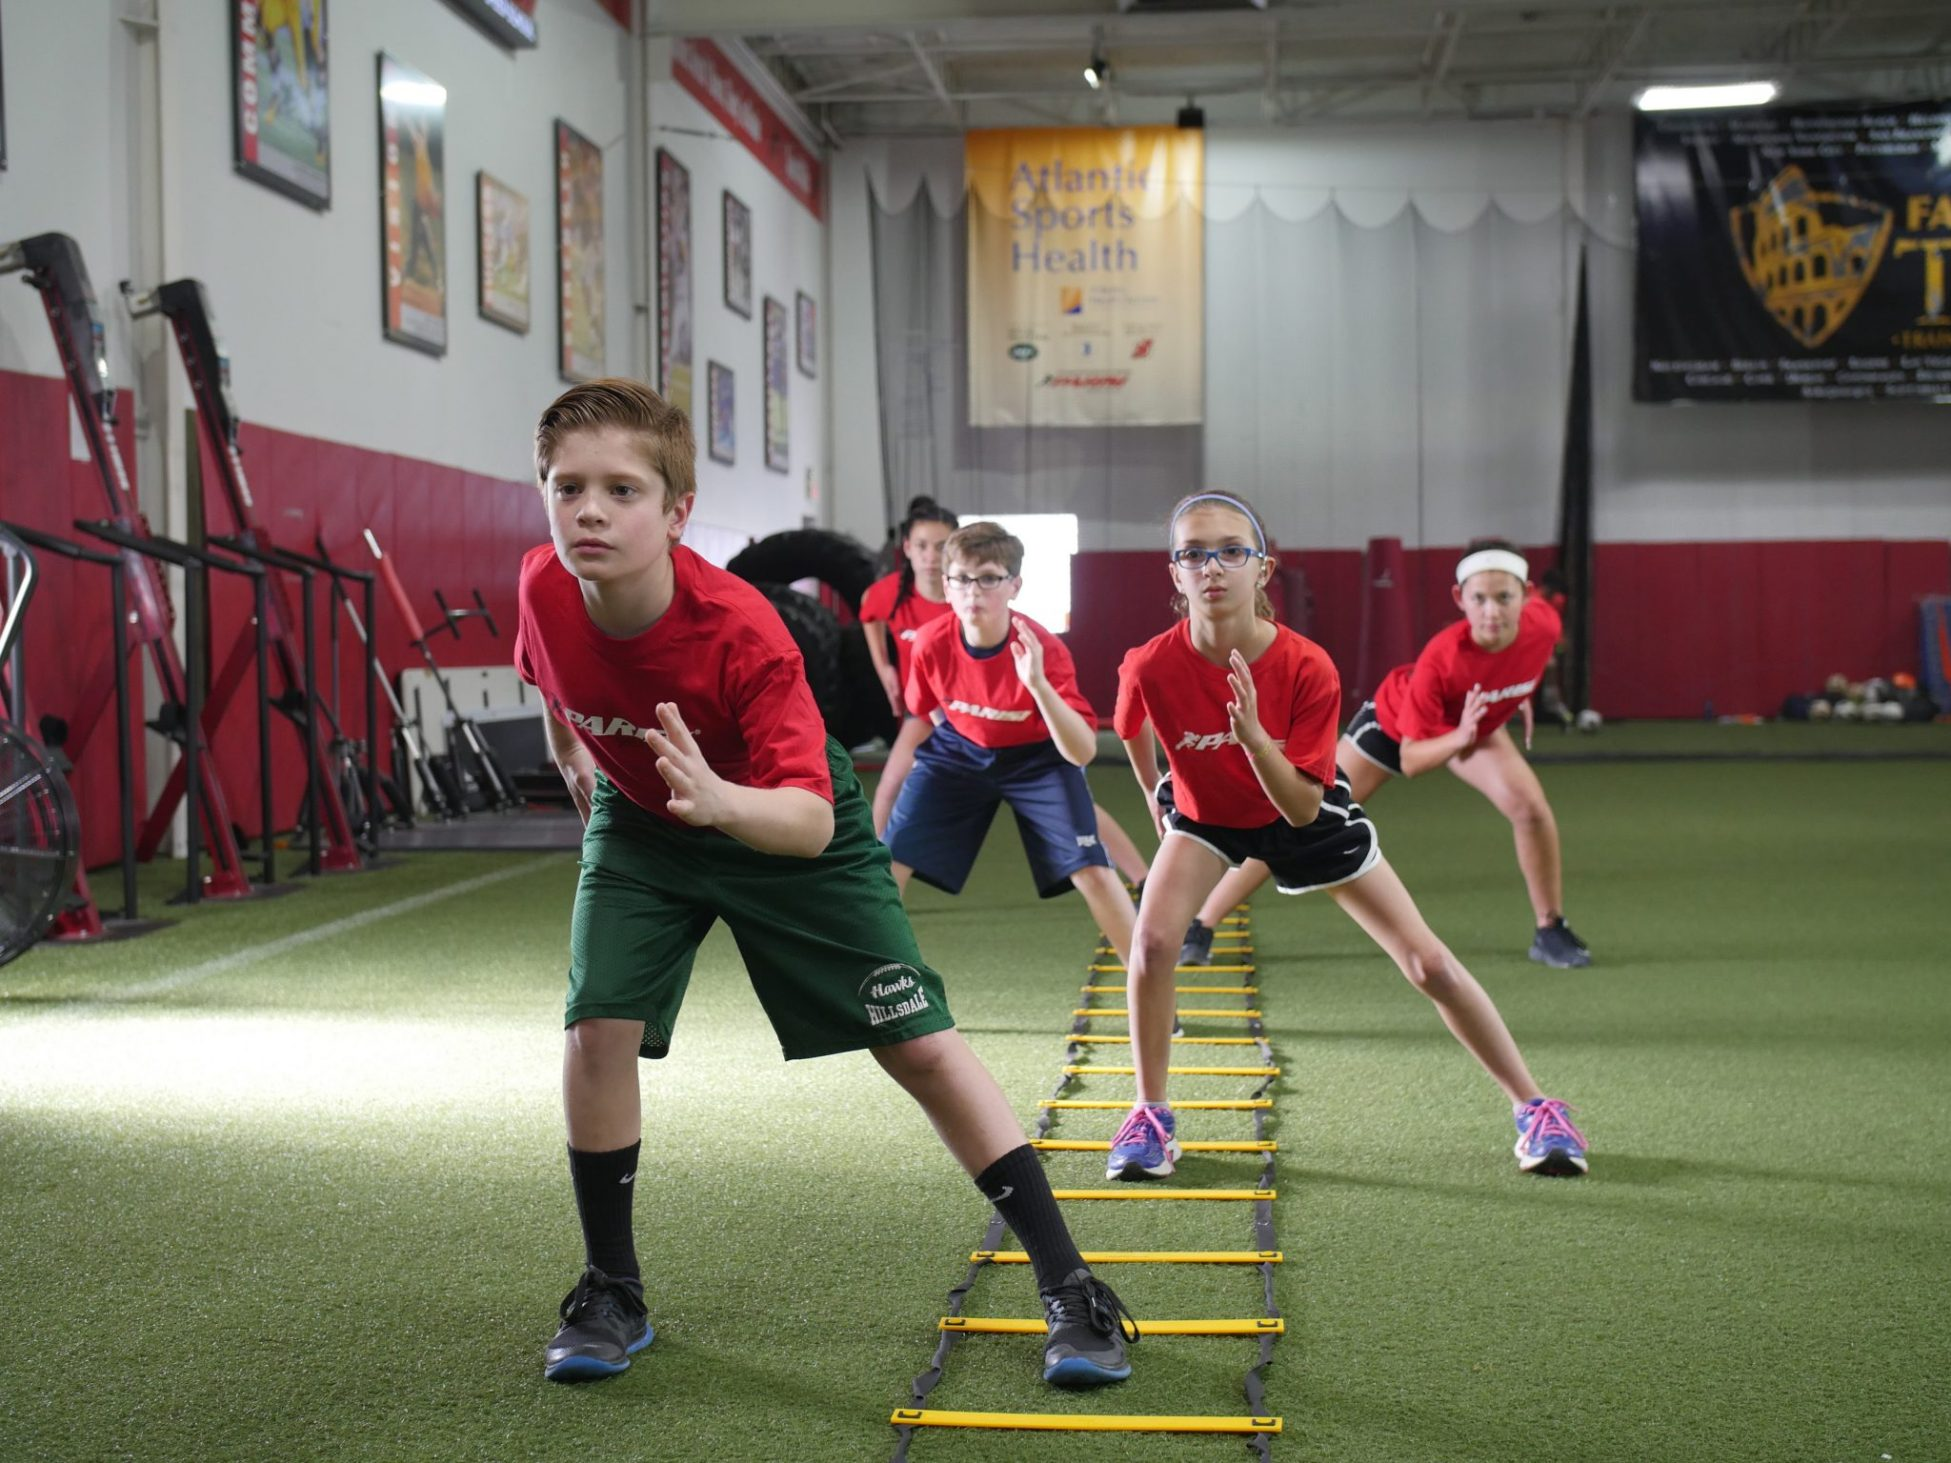 Youth Sports Training System - Parisi Speed School